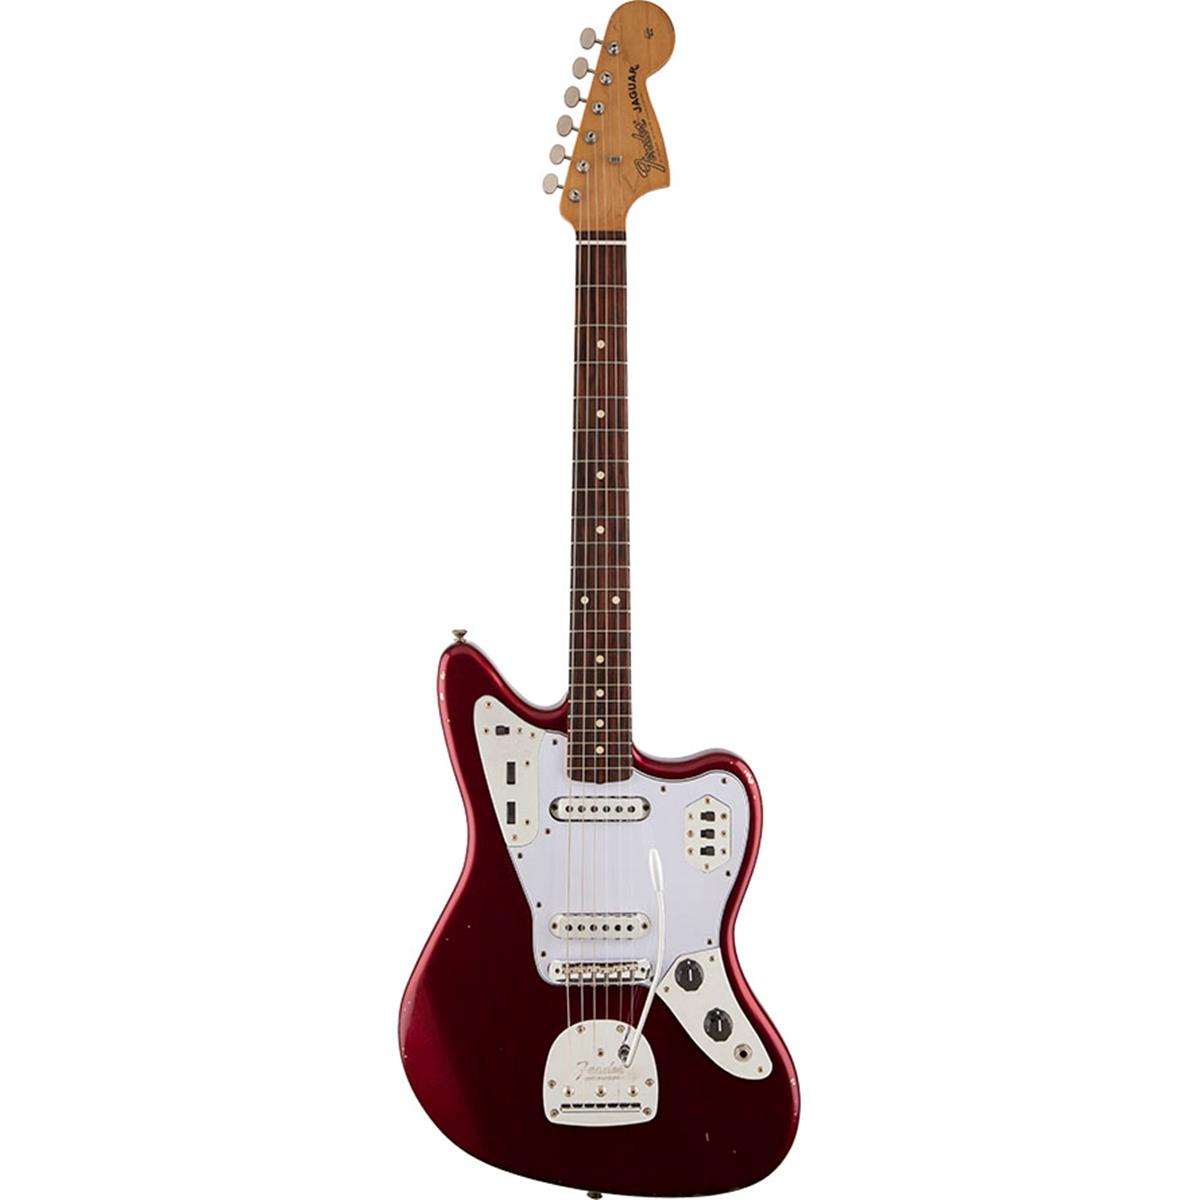 Fender Road Worn '60s Jaguar Electric Guitar - Candy Apple Red